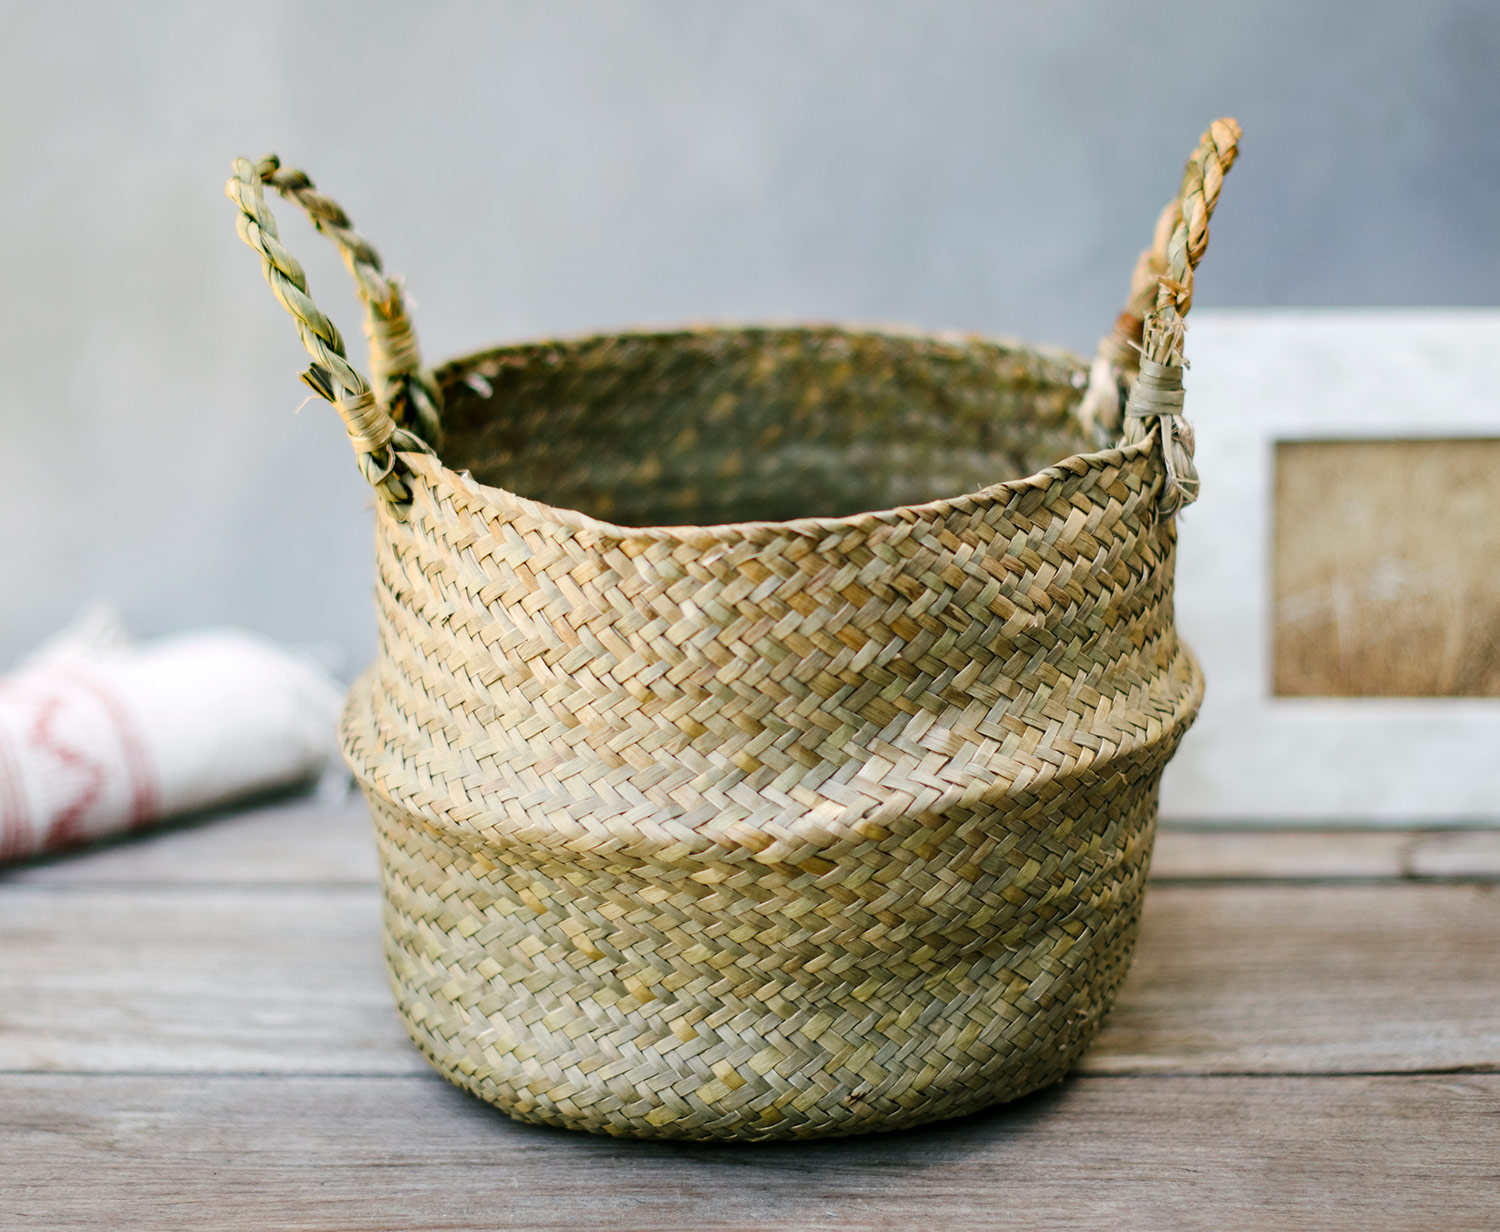 an-inside-crush-subscription-on-trend-home-decor-season-one-bellybasket.jpg